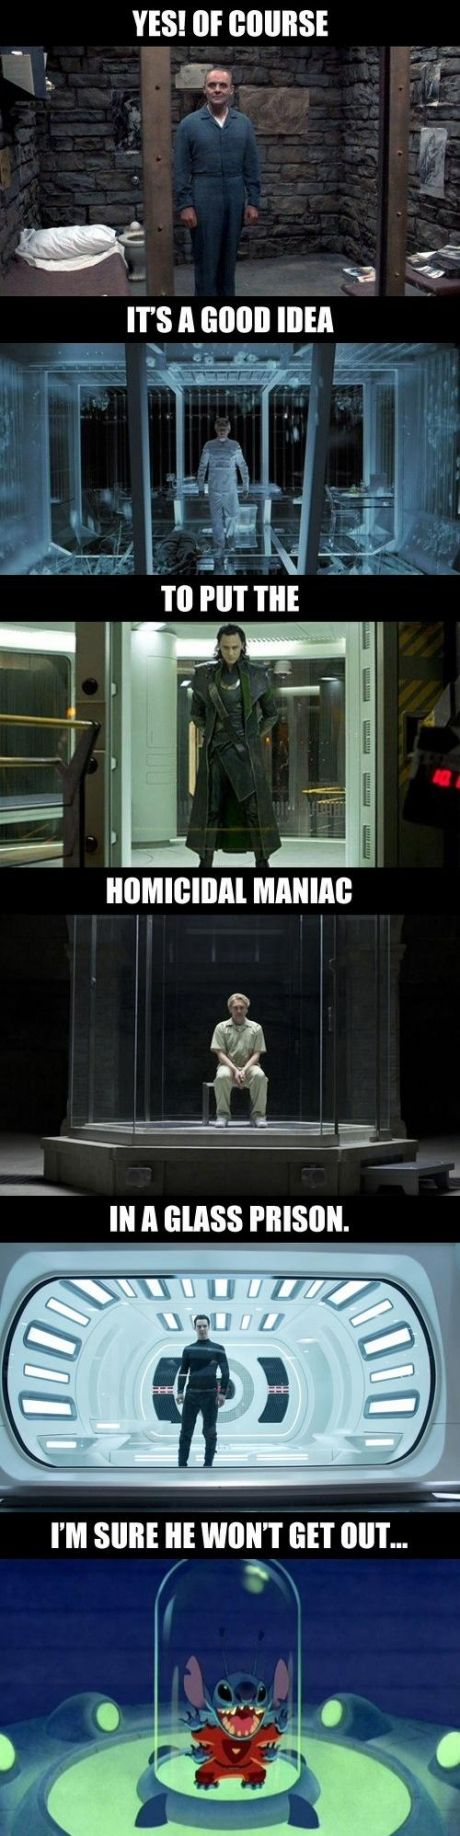 Whenever you see the bad guy in a glass cage, you know exactly what's going to happen next.